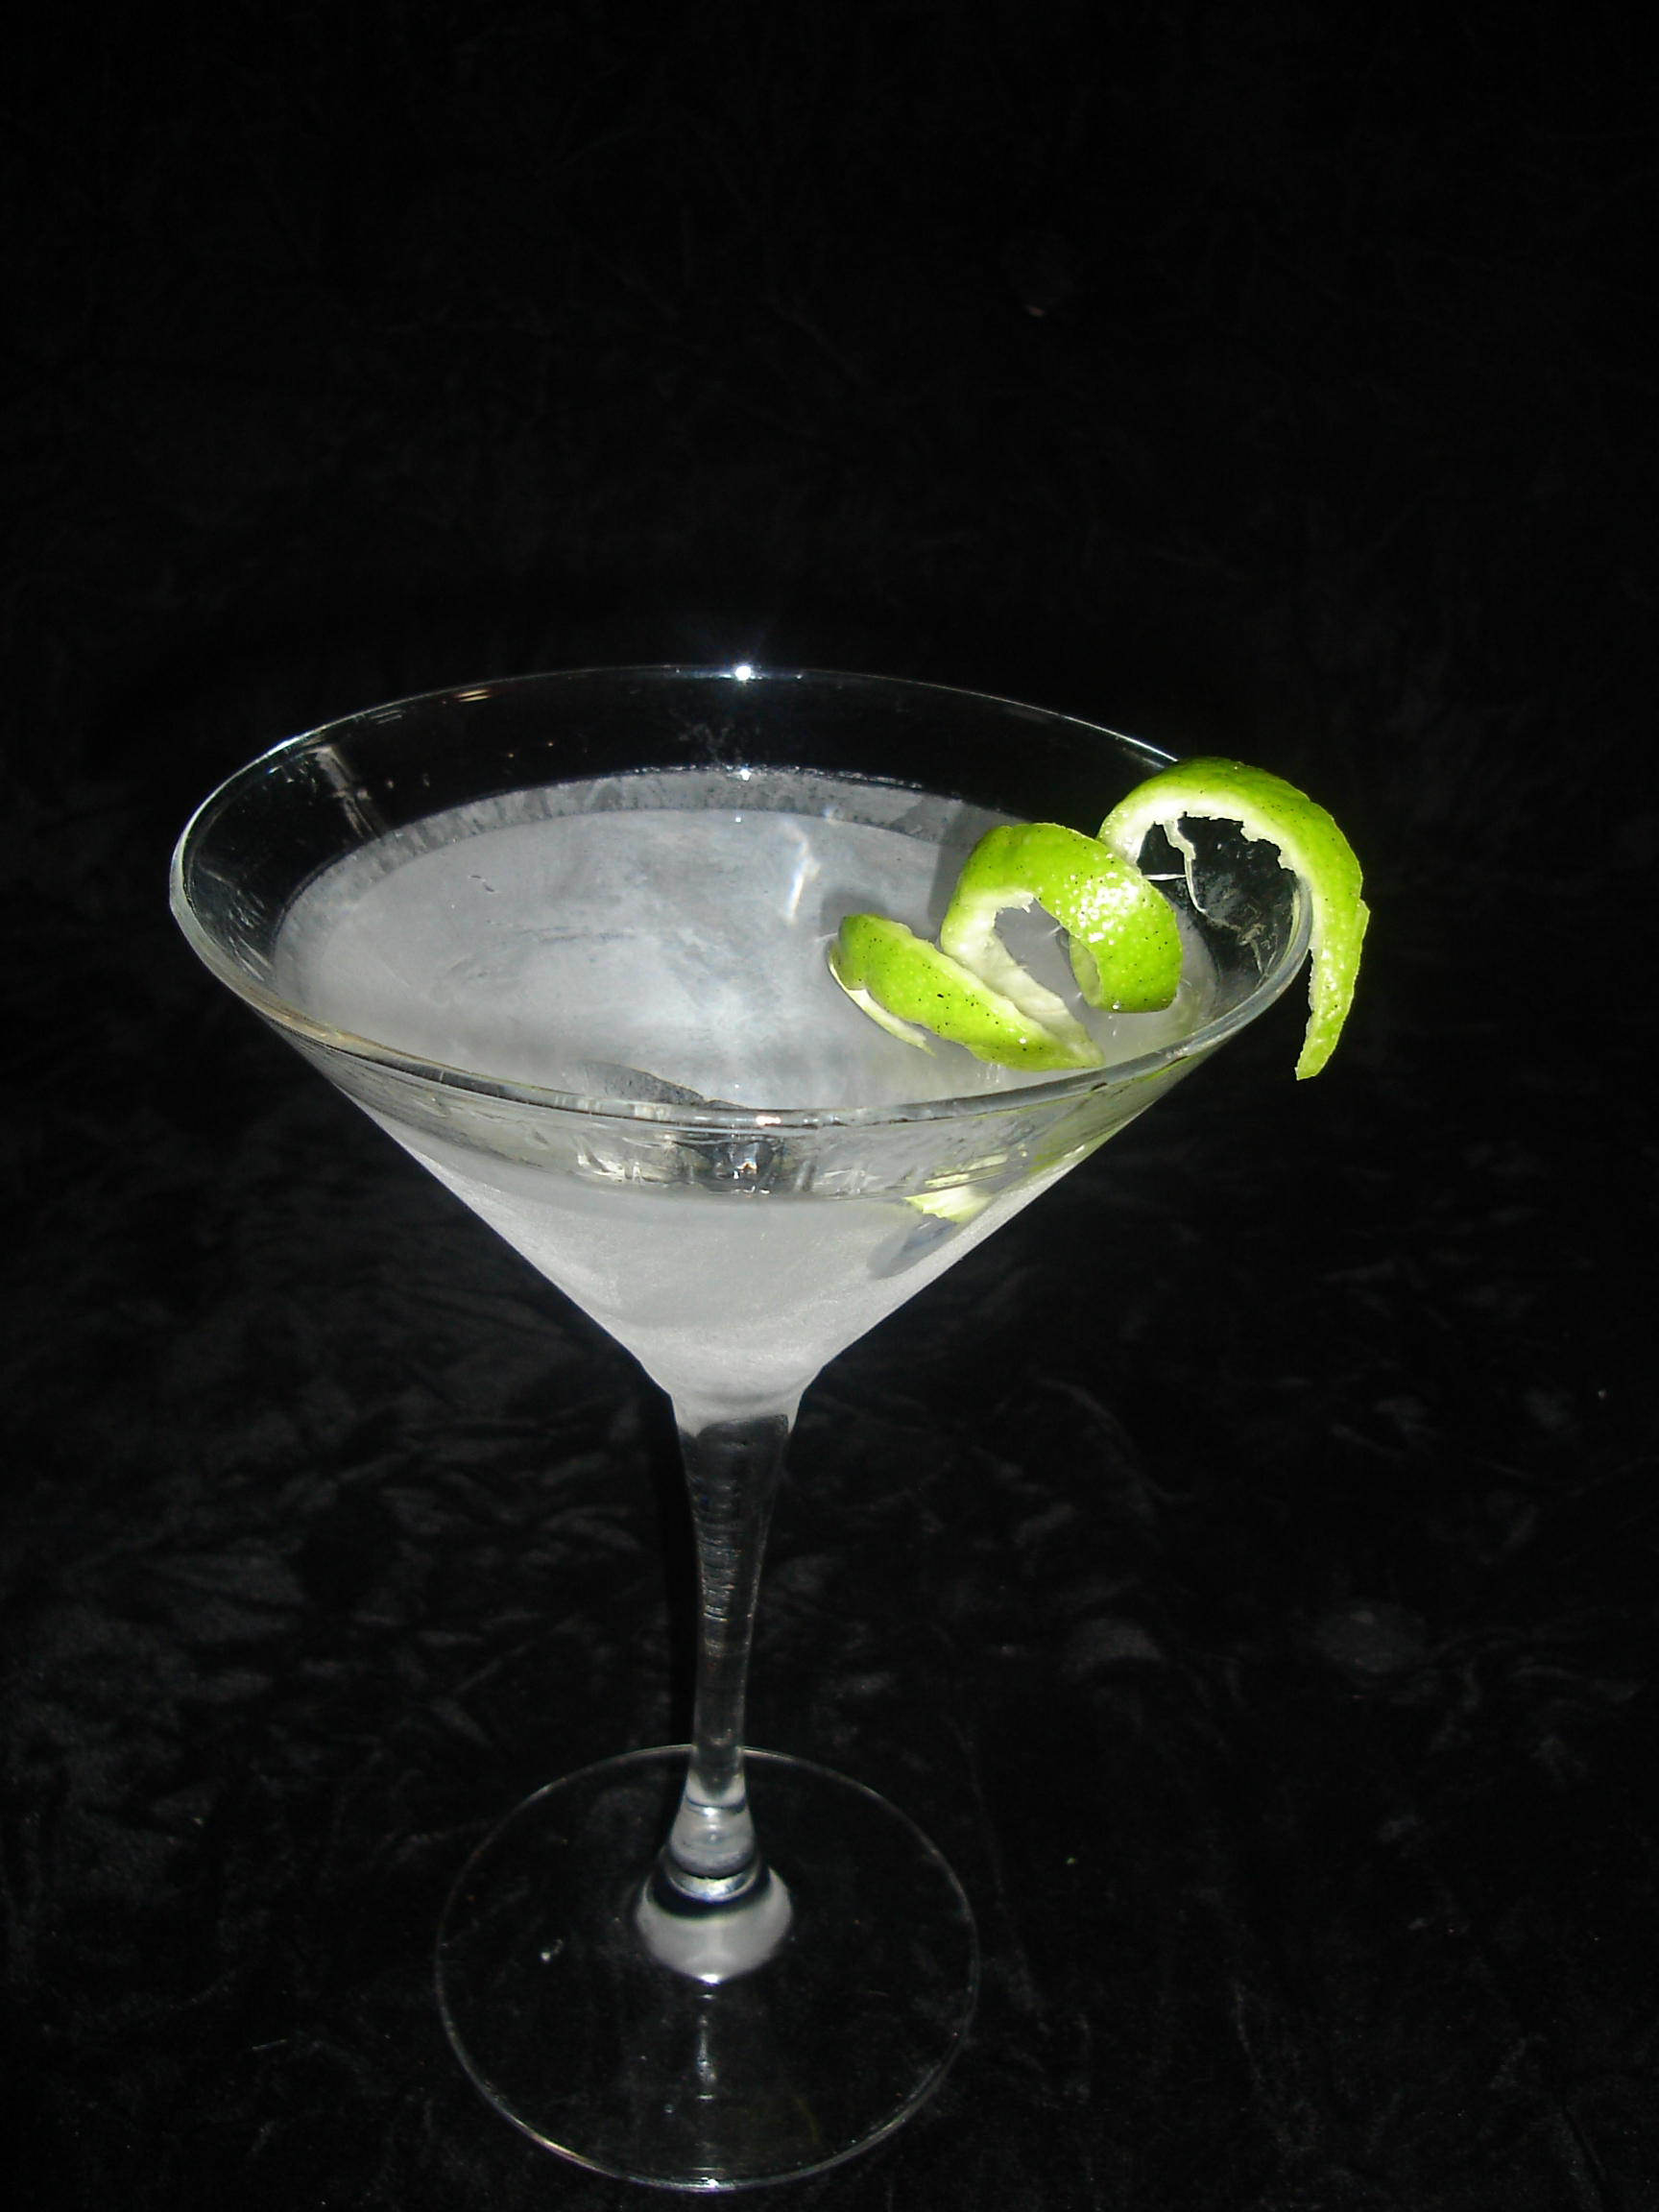 File:The perfect martini.jpg - Wikipedia, the free encyclopedia